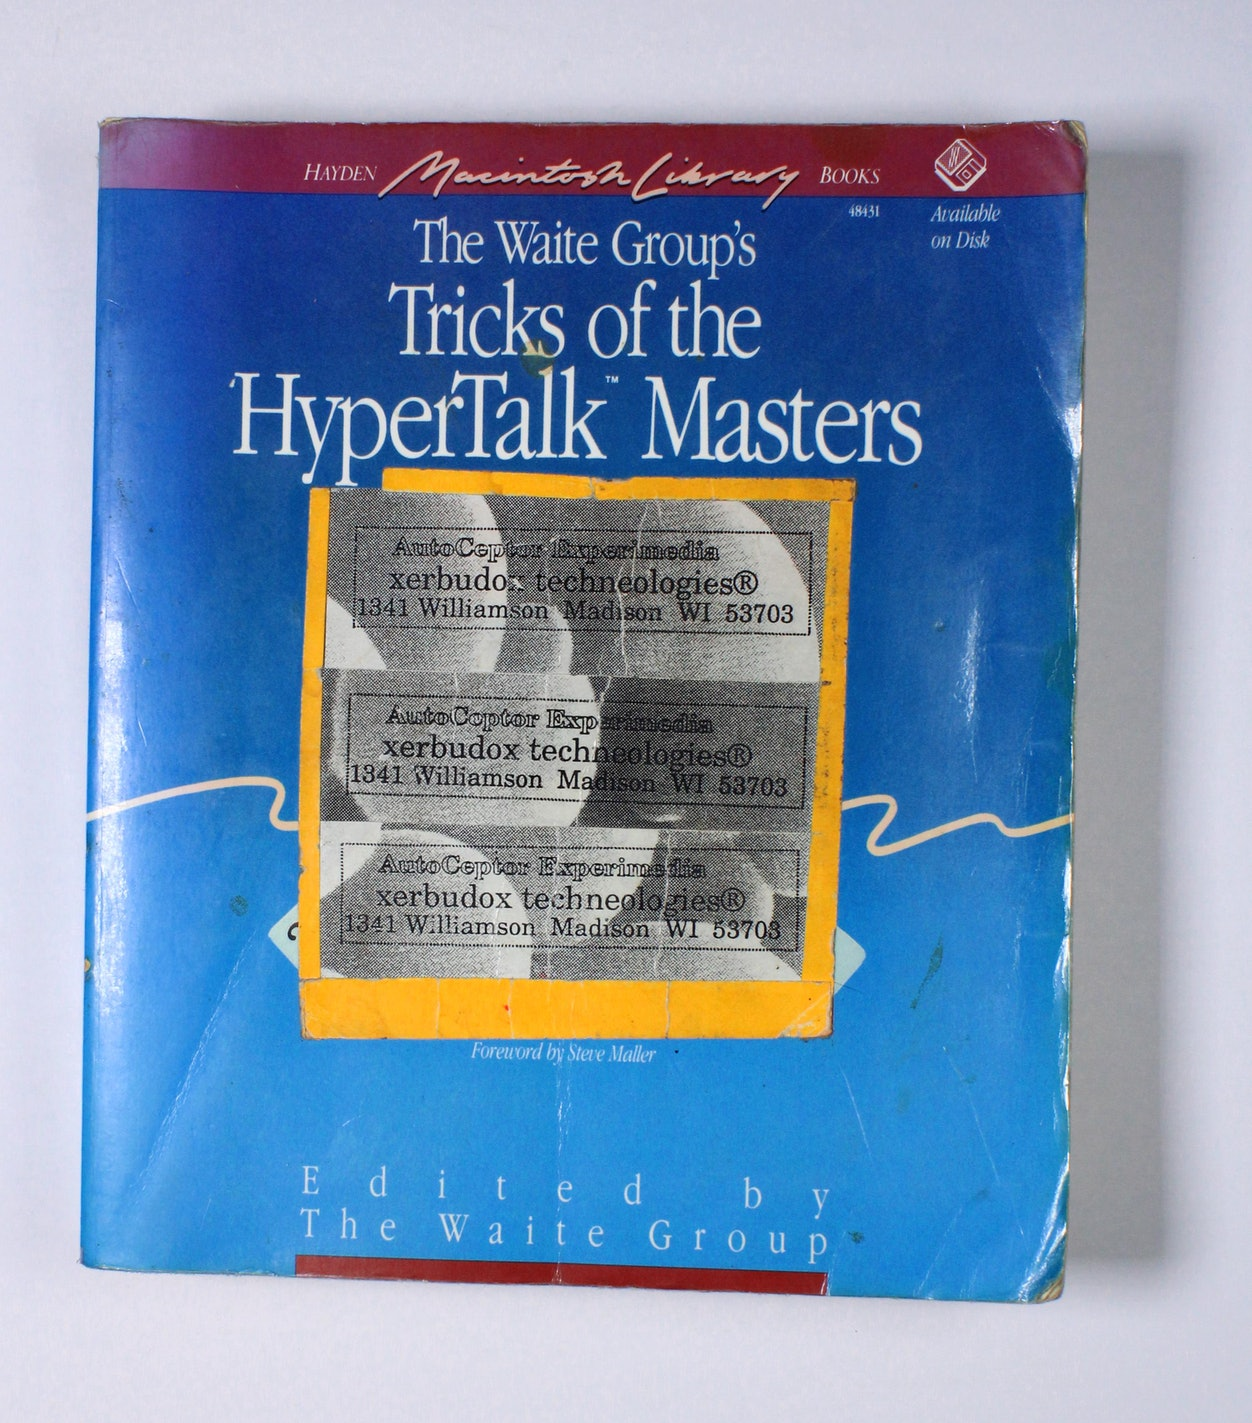 The Waite Group's Tricks of the HyperTalk Masters